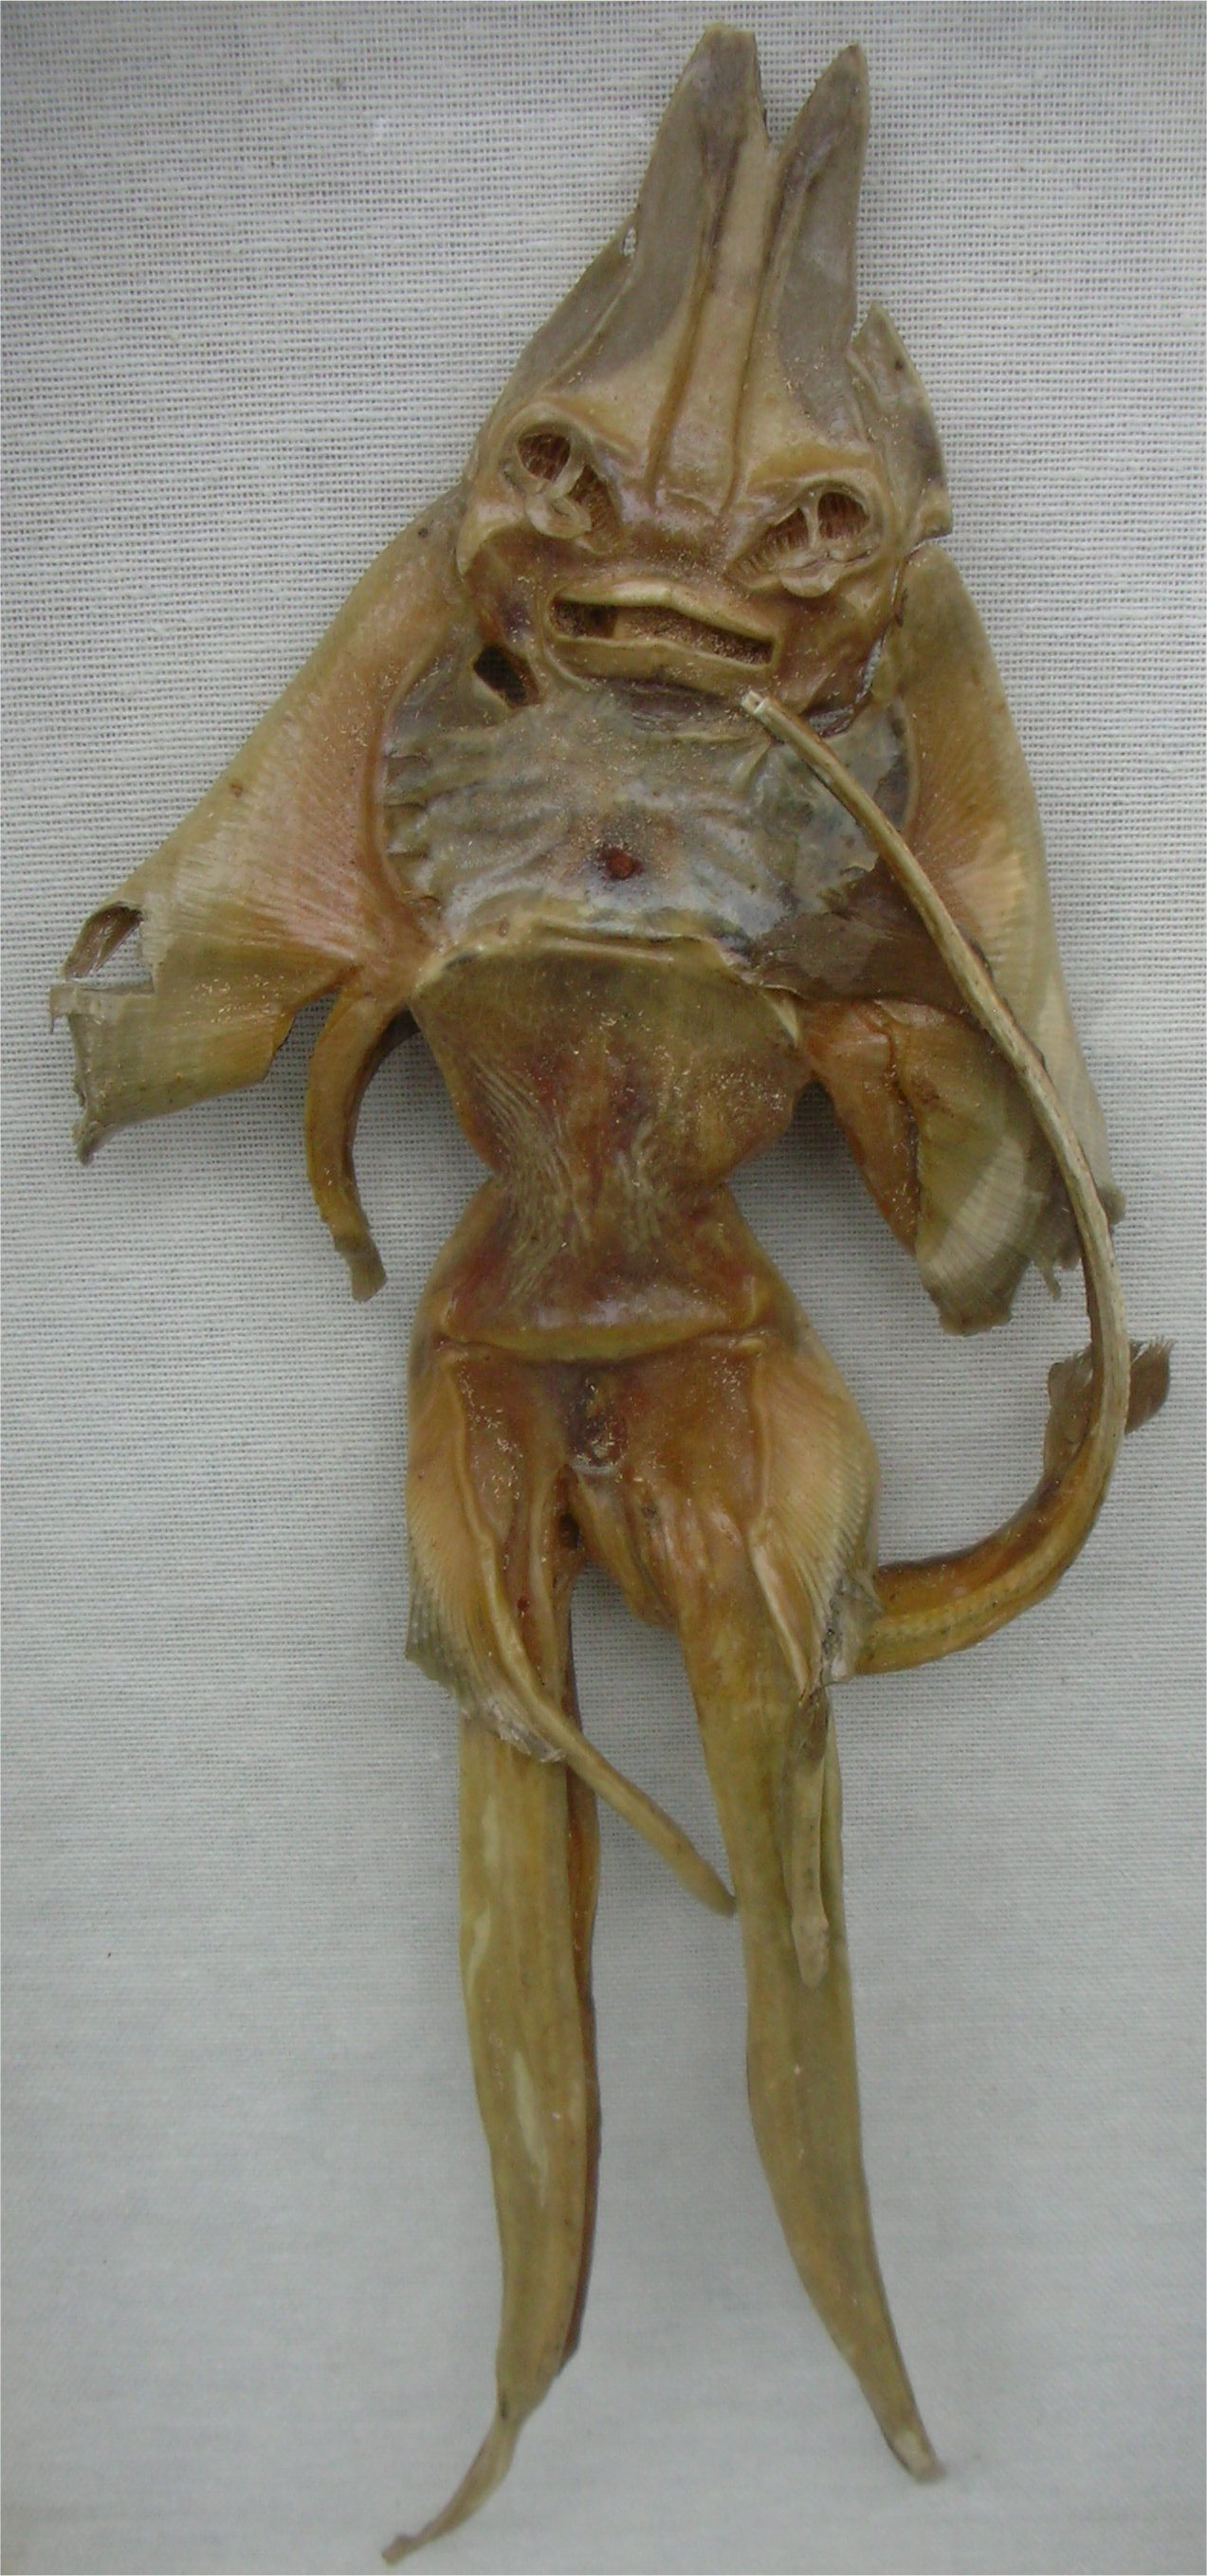 Description Jenny Haniver1218.jpg